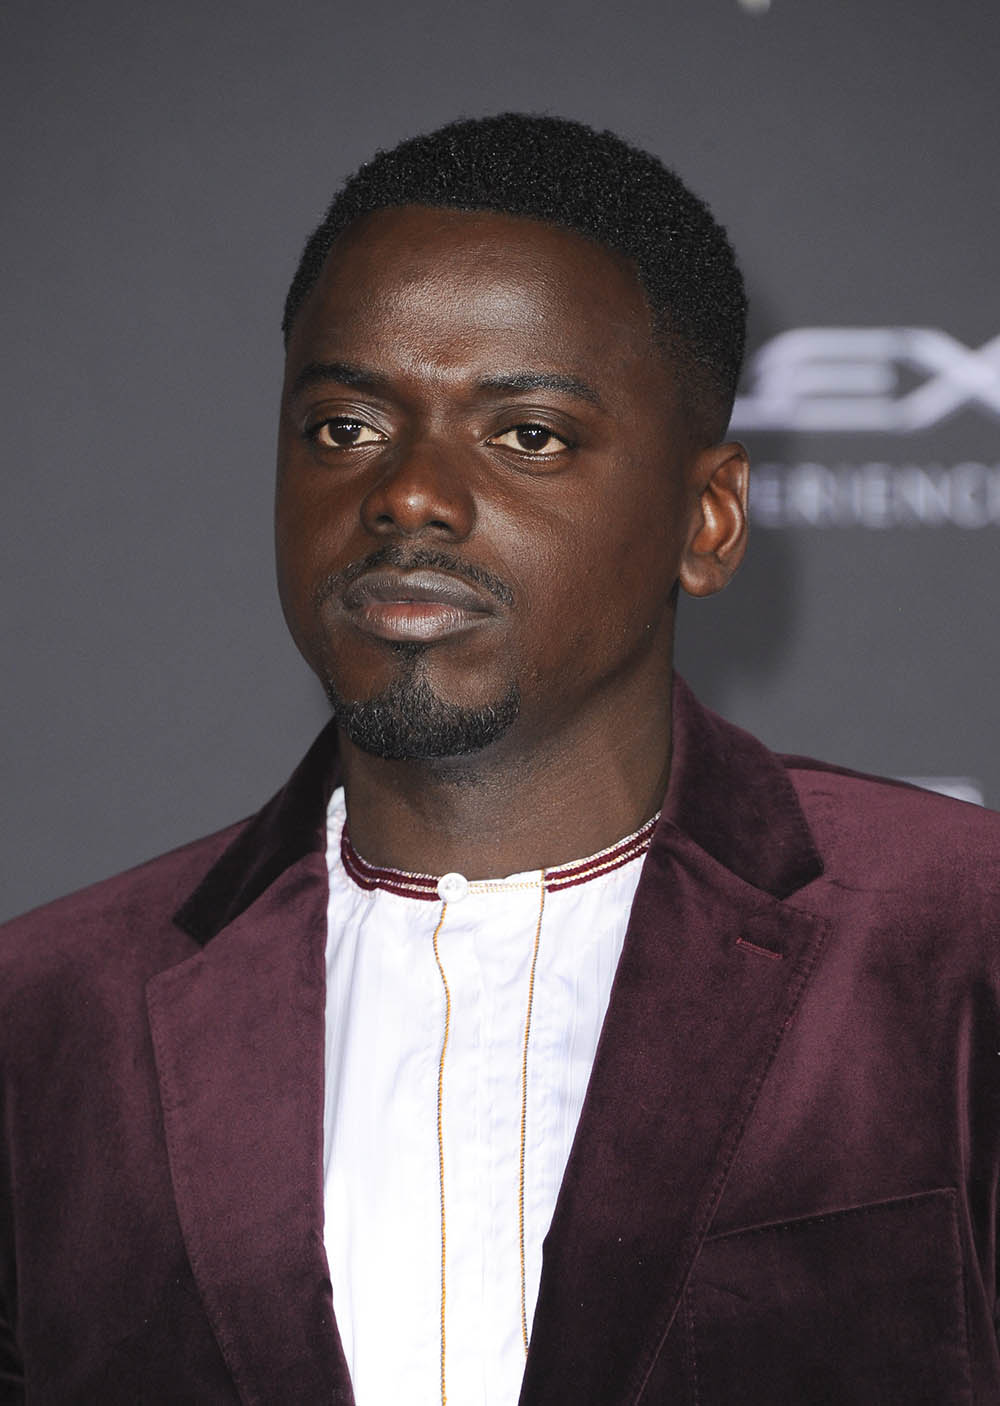 Daniel Kaluuya At Film Premiere Of Black Panther Sandra Rose